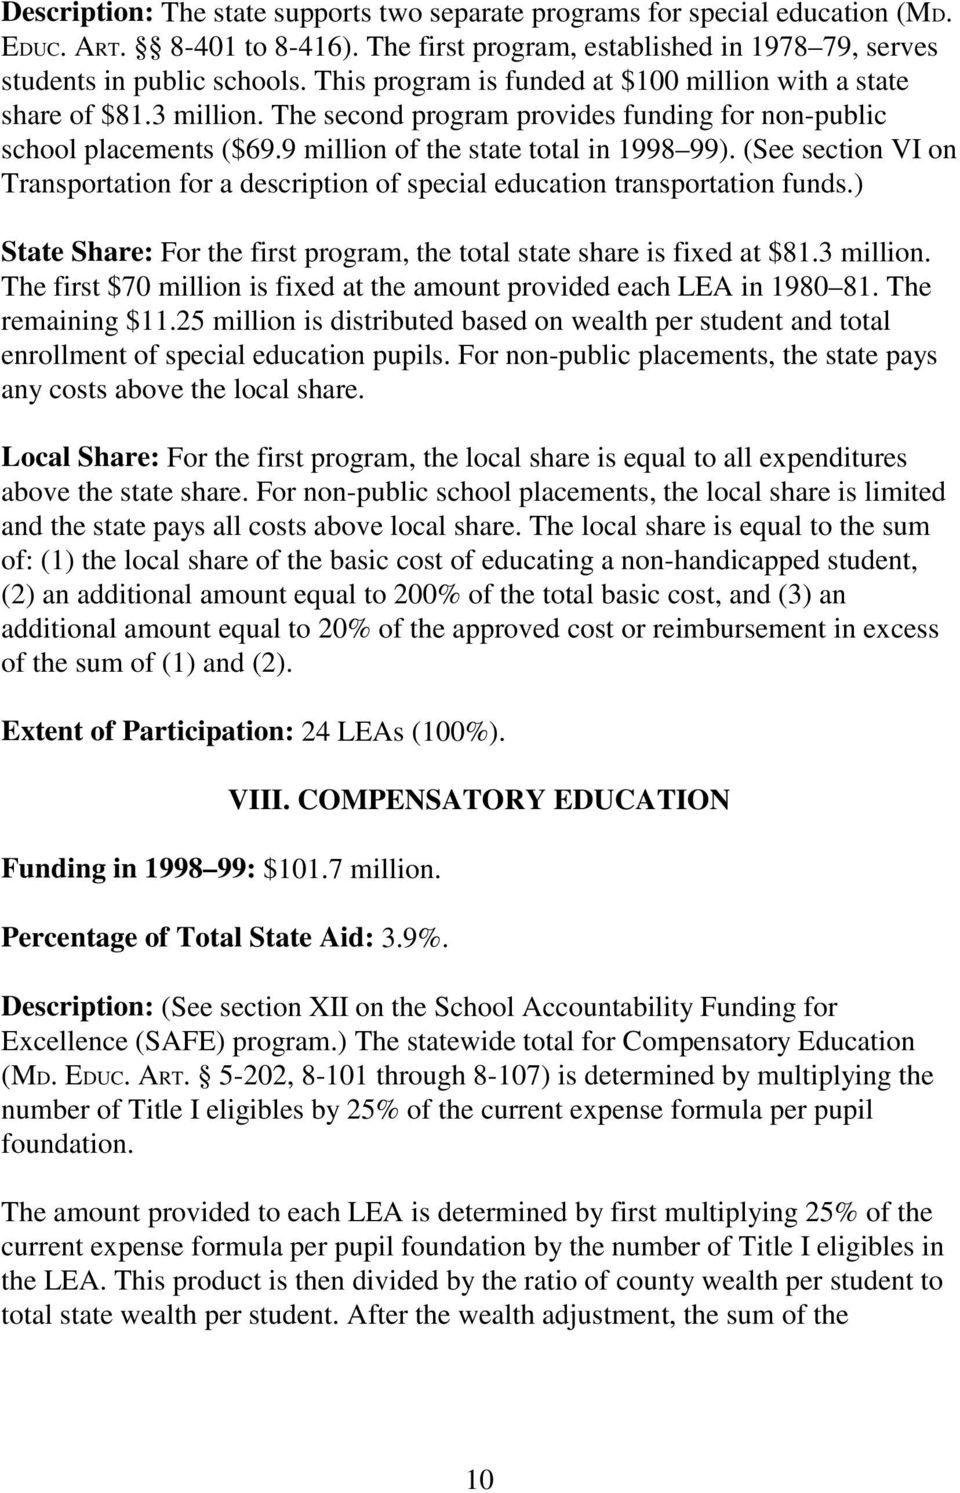 (See section VI on Transportation for a description of special education transportation funds.) State Share: For the first program, the total state share is fixed at $81.3 million.